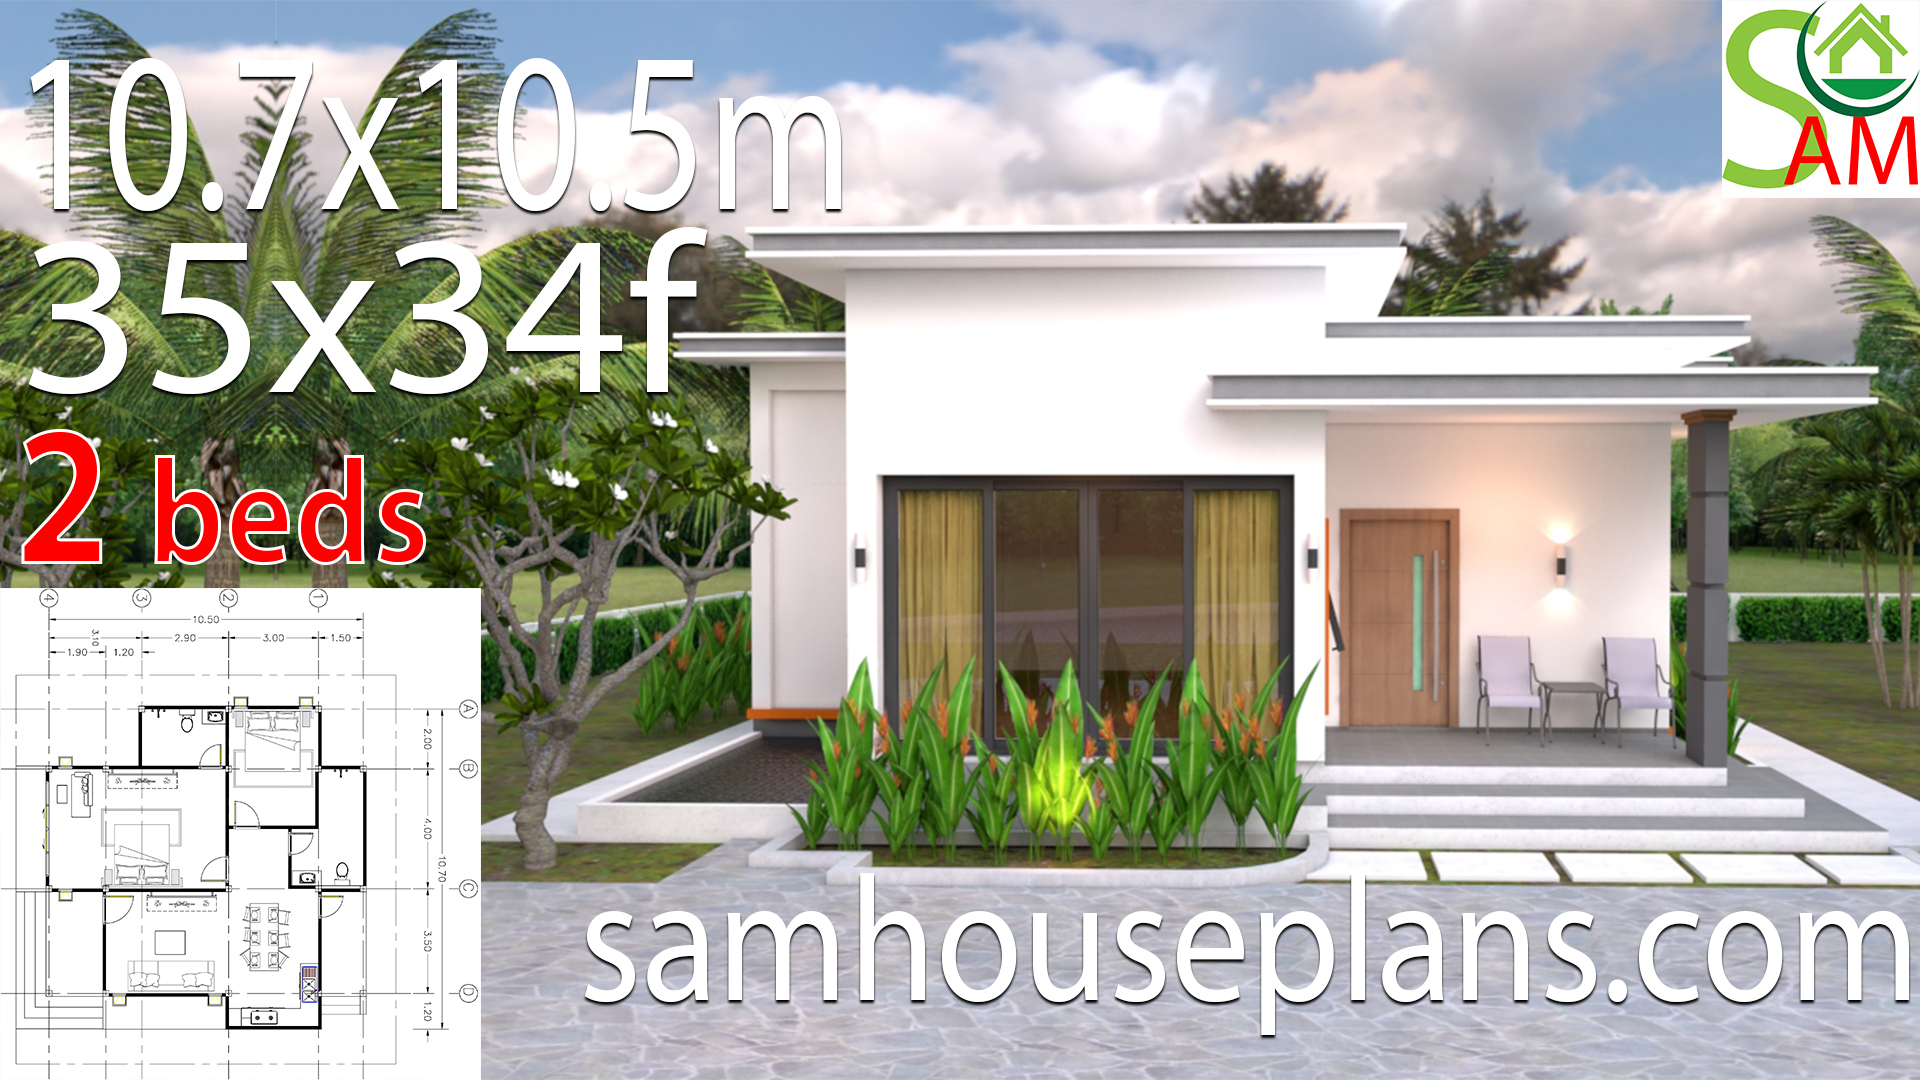 House Plans 10 7x10 5m With 2 Bedrooms Flat Roof Samhouseplans